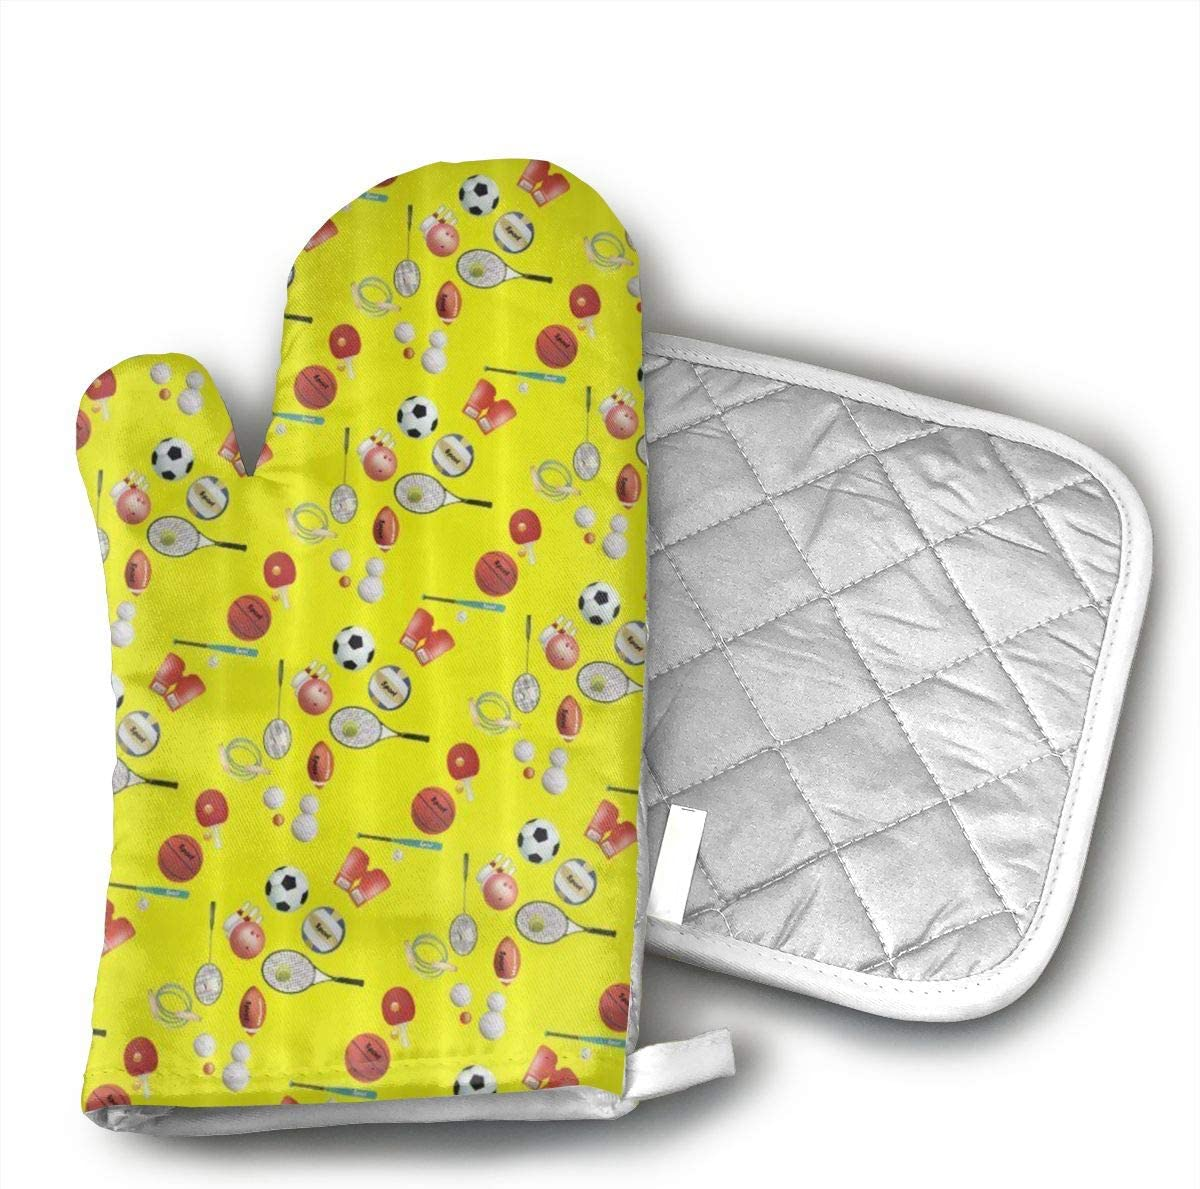 Party of Ball Baseball Tennis Soccer Bowling Kitchen Oven Mitts and Pot Holders, Hot Pads and Cotton Microwave Oven Mitts Heat Resistant for Men Women